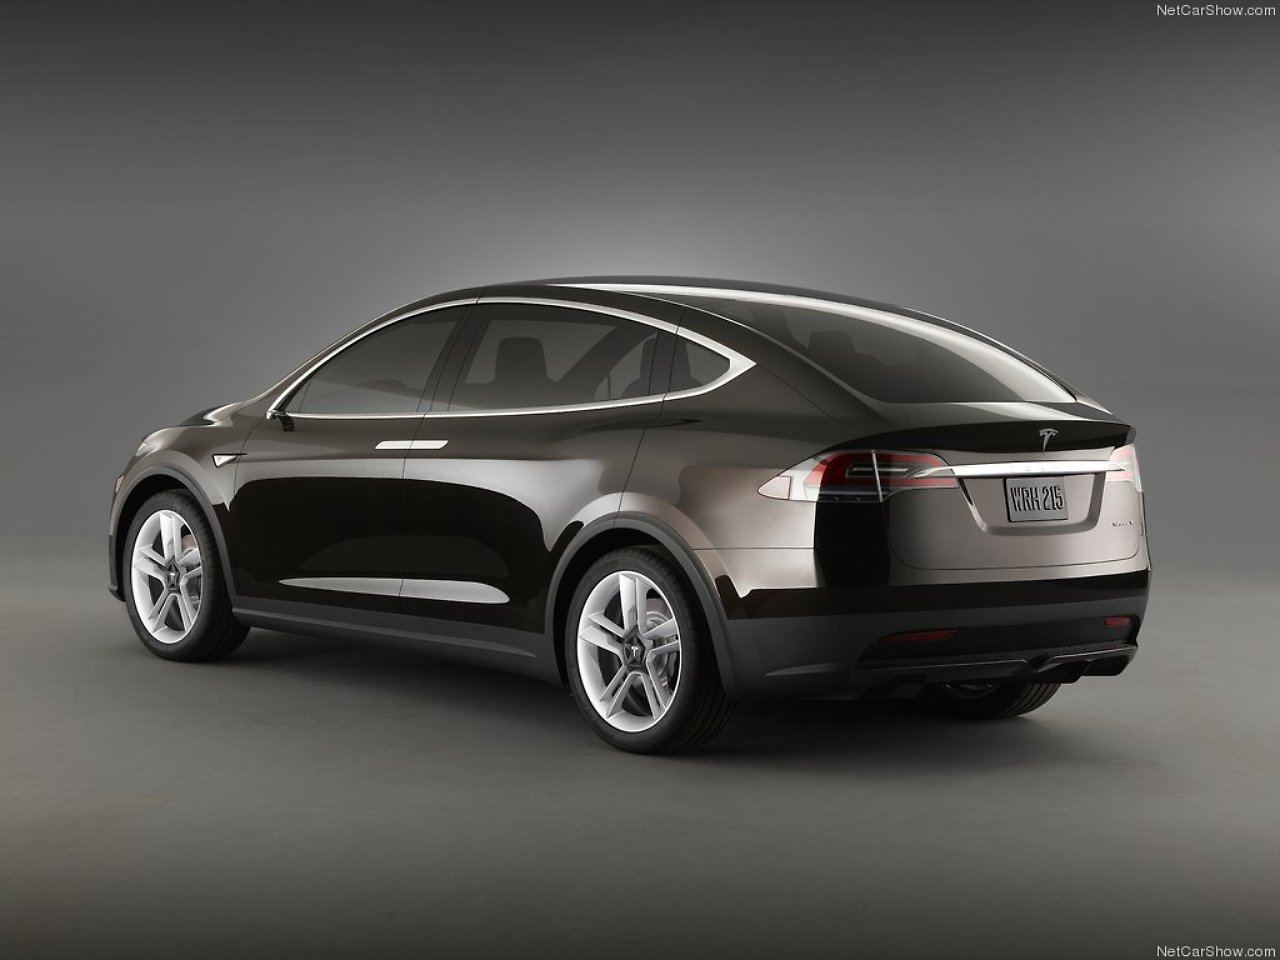 elektro suv mit fl gelt ren teslas model x wird frauenversteher n. Black Bedroom Furniture Sets. Home Design Ideas